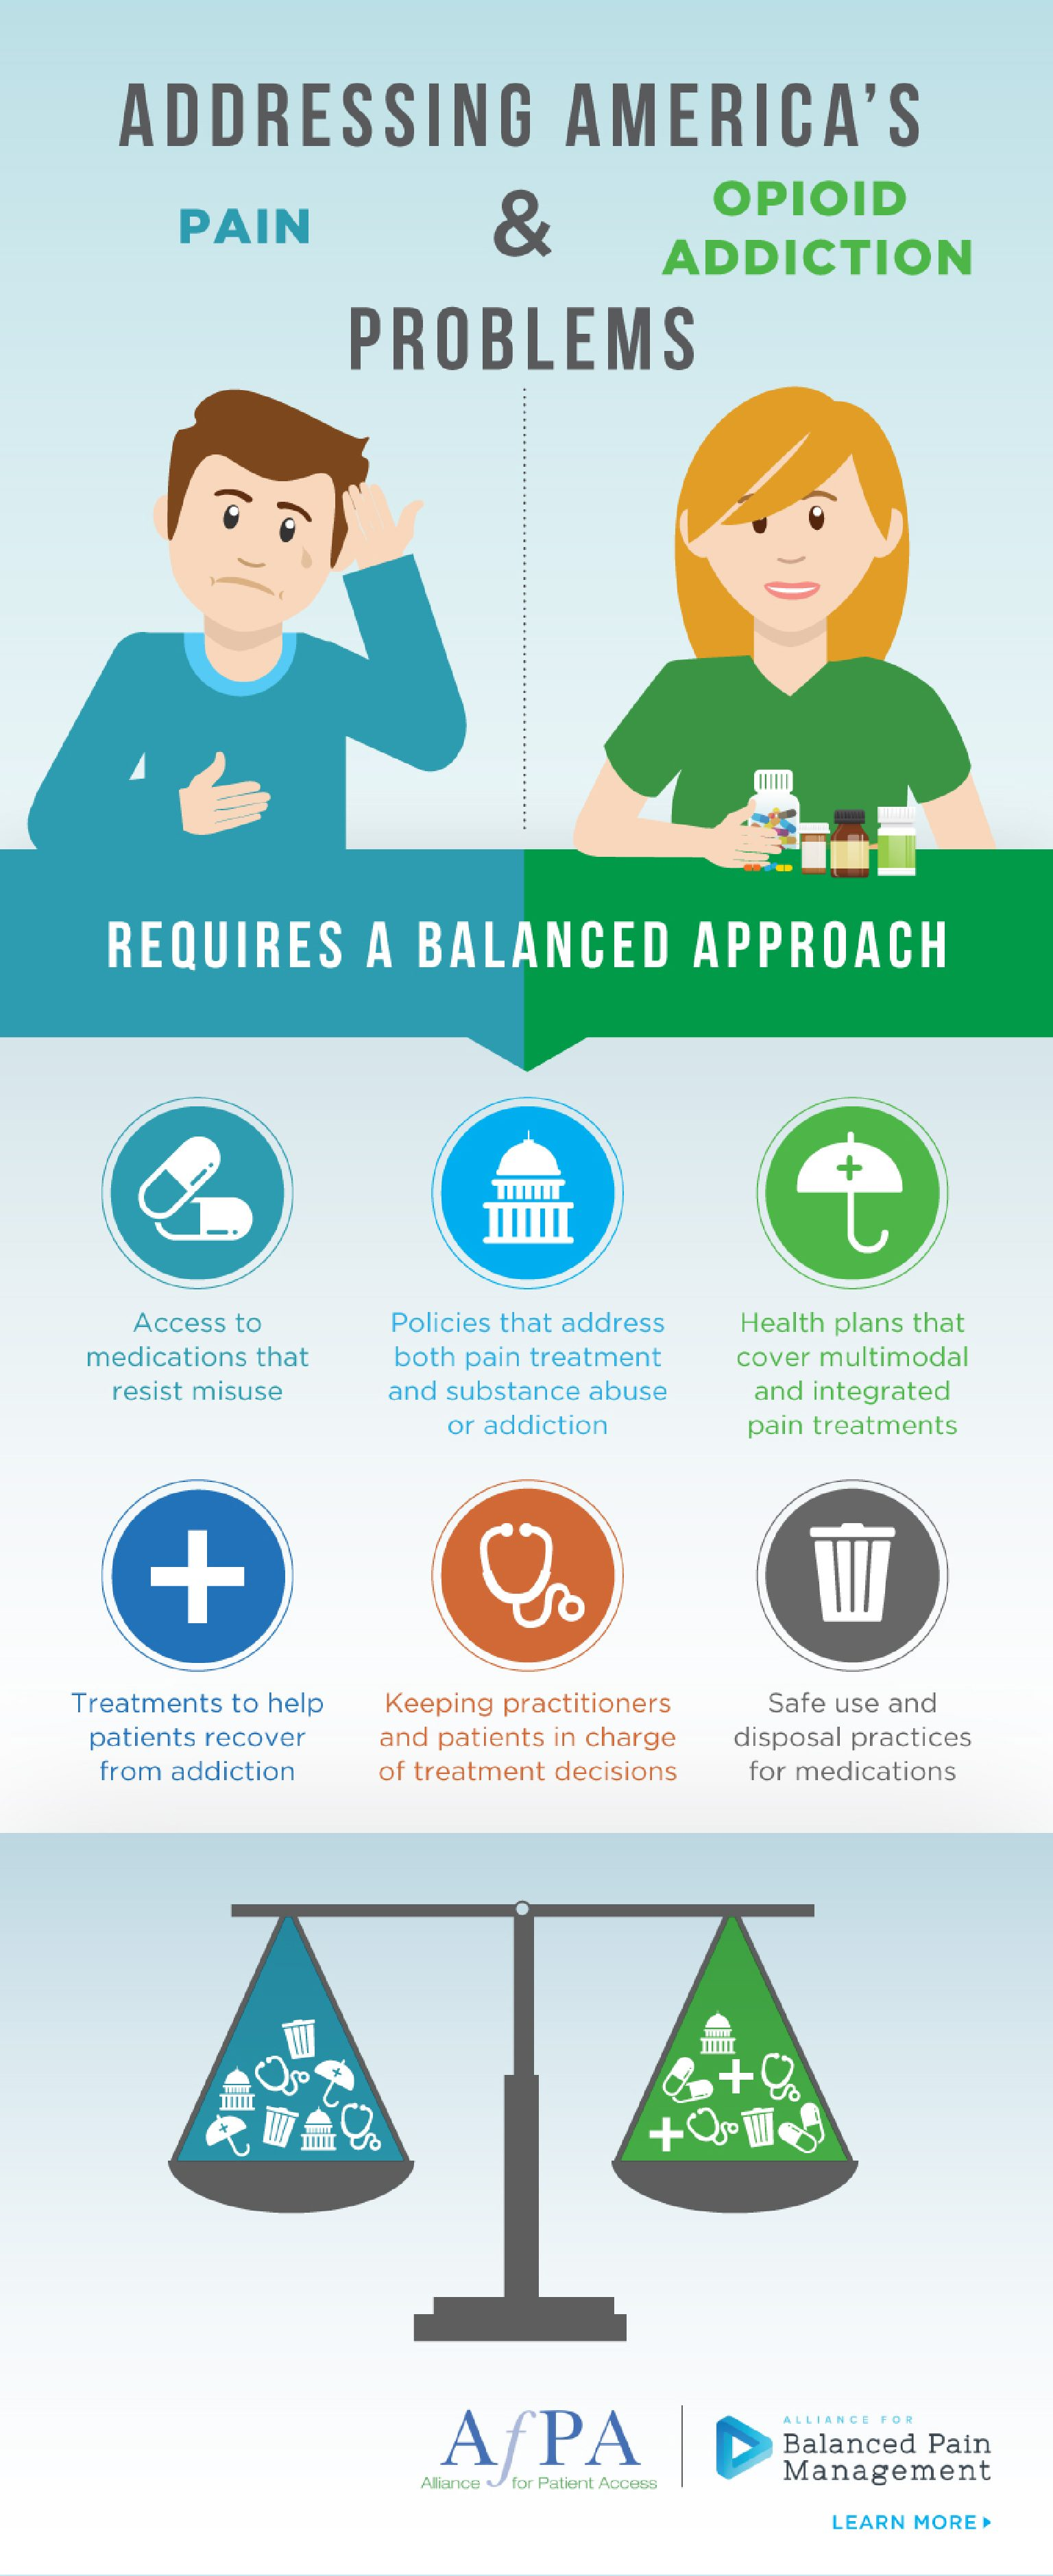 Resources Alliance For Balanced Pain Management